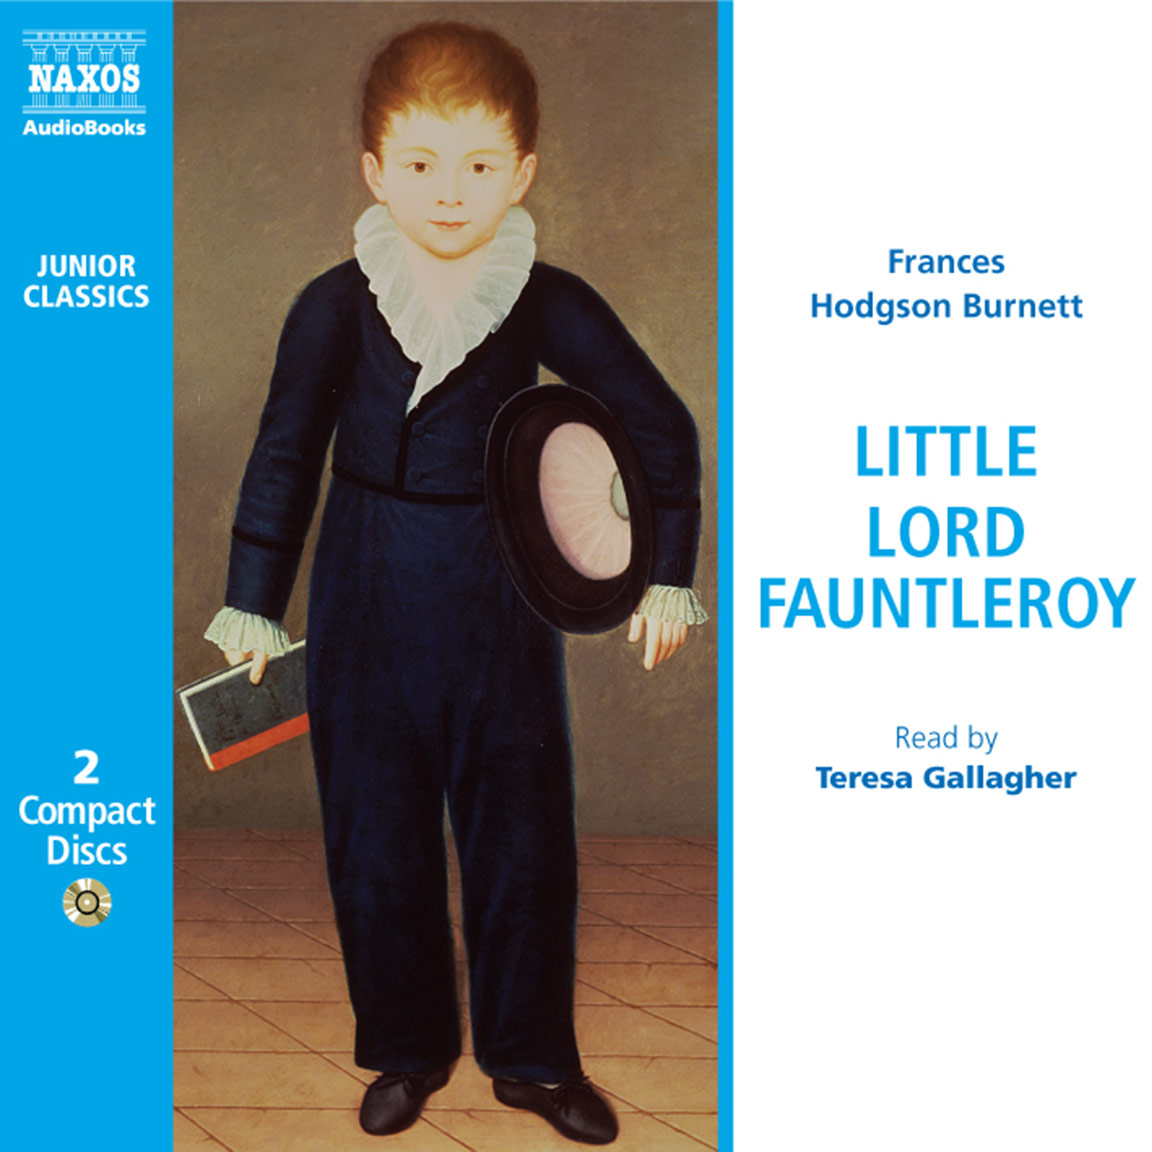 Little Lord Fauntleroy (abridged)